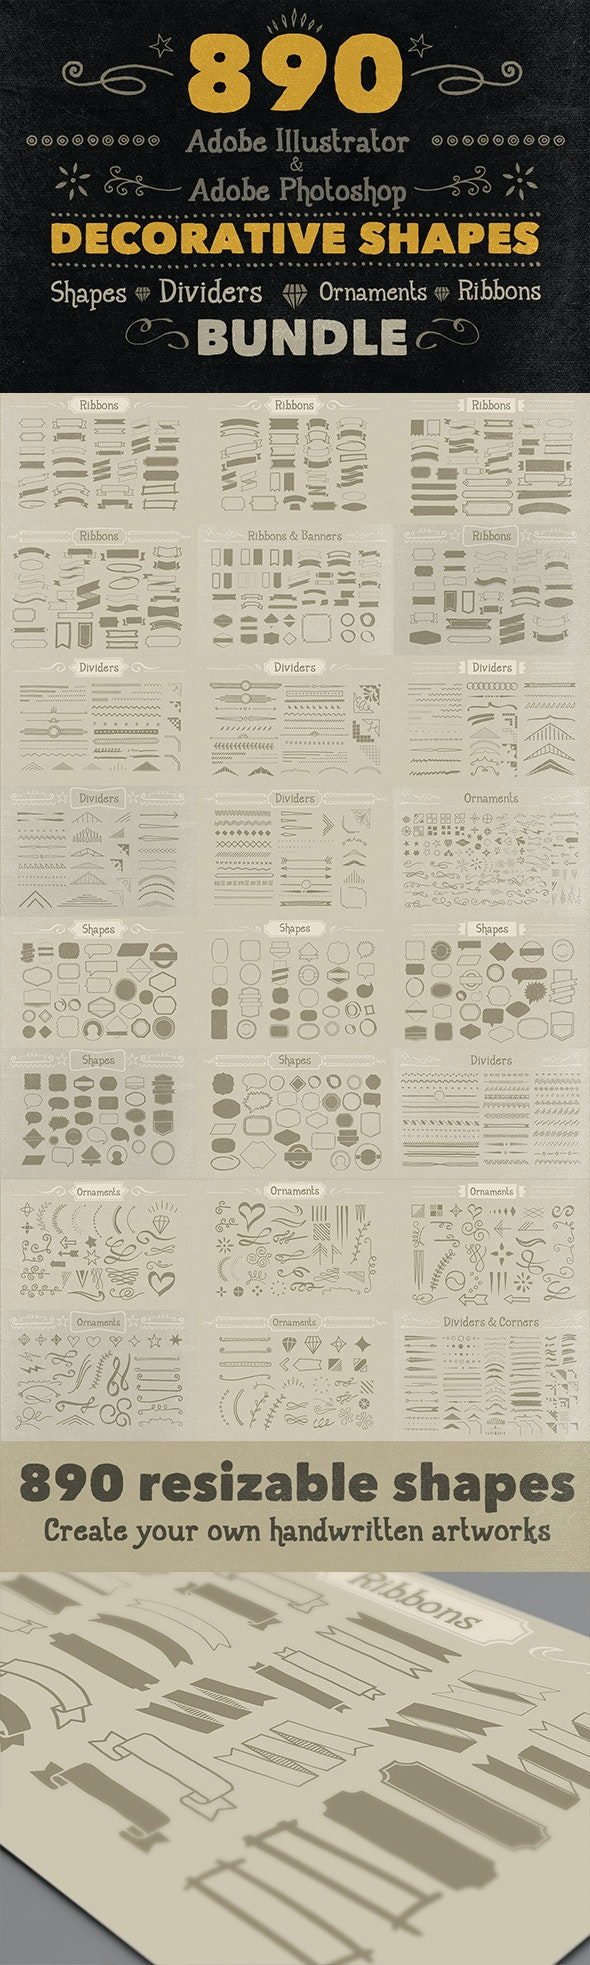 890 Handwritten Shapes - Bundle - Symbols Shapes